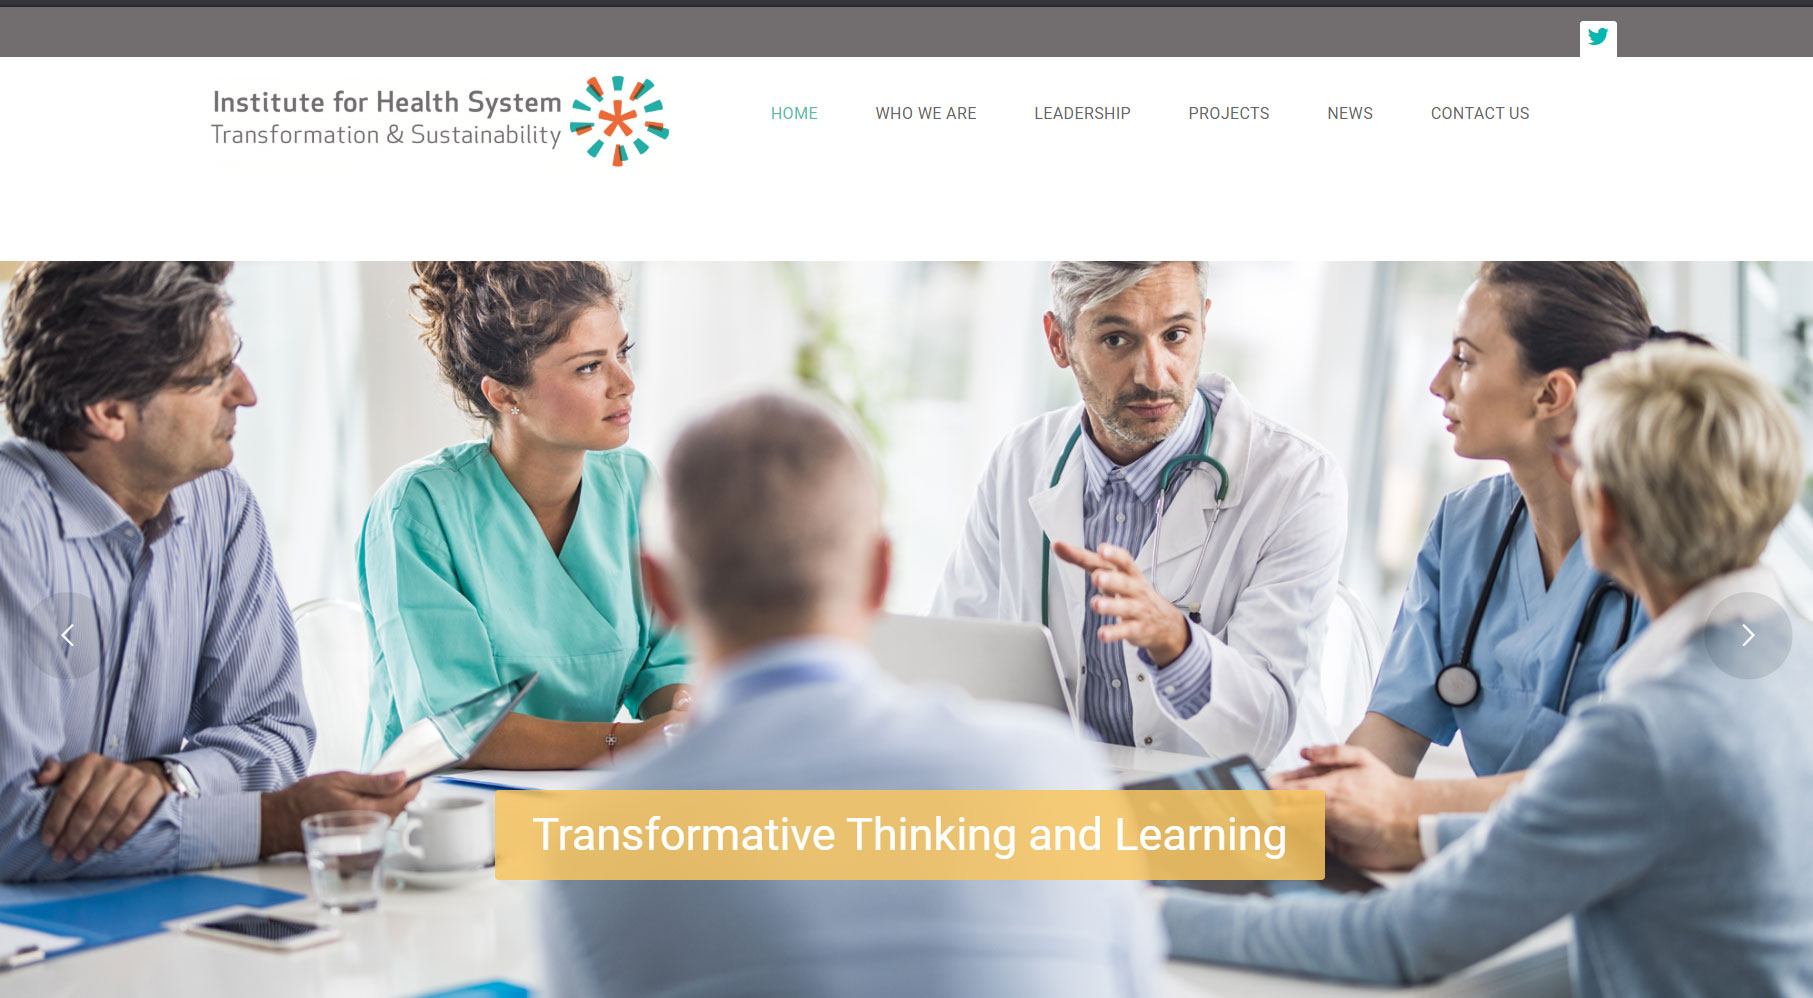 Institute for Health System Sustainability and Transformation Website Home Page